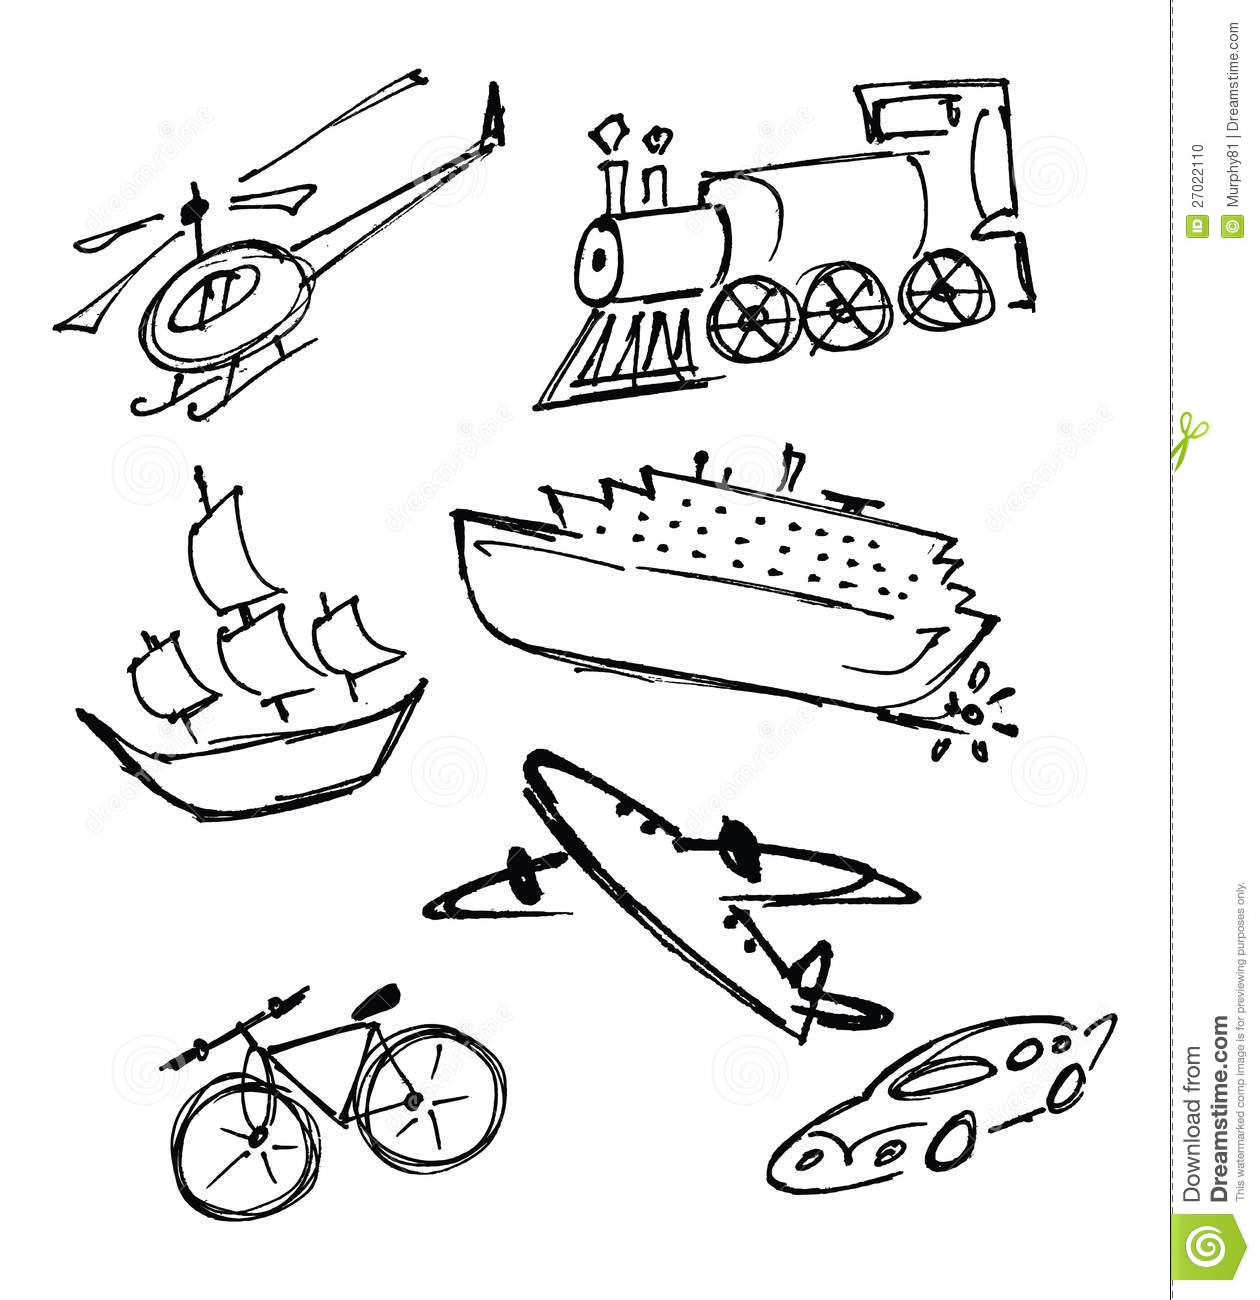 Royalty Free Stock Images Spa Icons Set Illustration Eps Image37740899 besides Stock Photo Set Means Transportation Image27022110 further Royalty Free Stock Photo House Plan Image2251715 also Royalty Free Stock Photos Drawing  pass Image14631498 likewise Stock Illustration Woodblock Style Lighthouse Vintage Lithograph Rough Waves Behind Image49651380. on 3d house plans